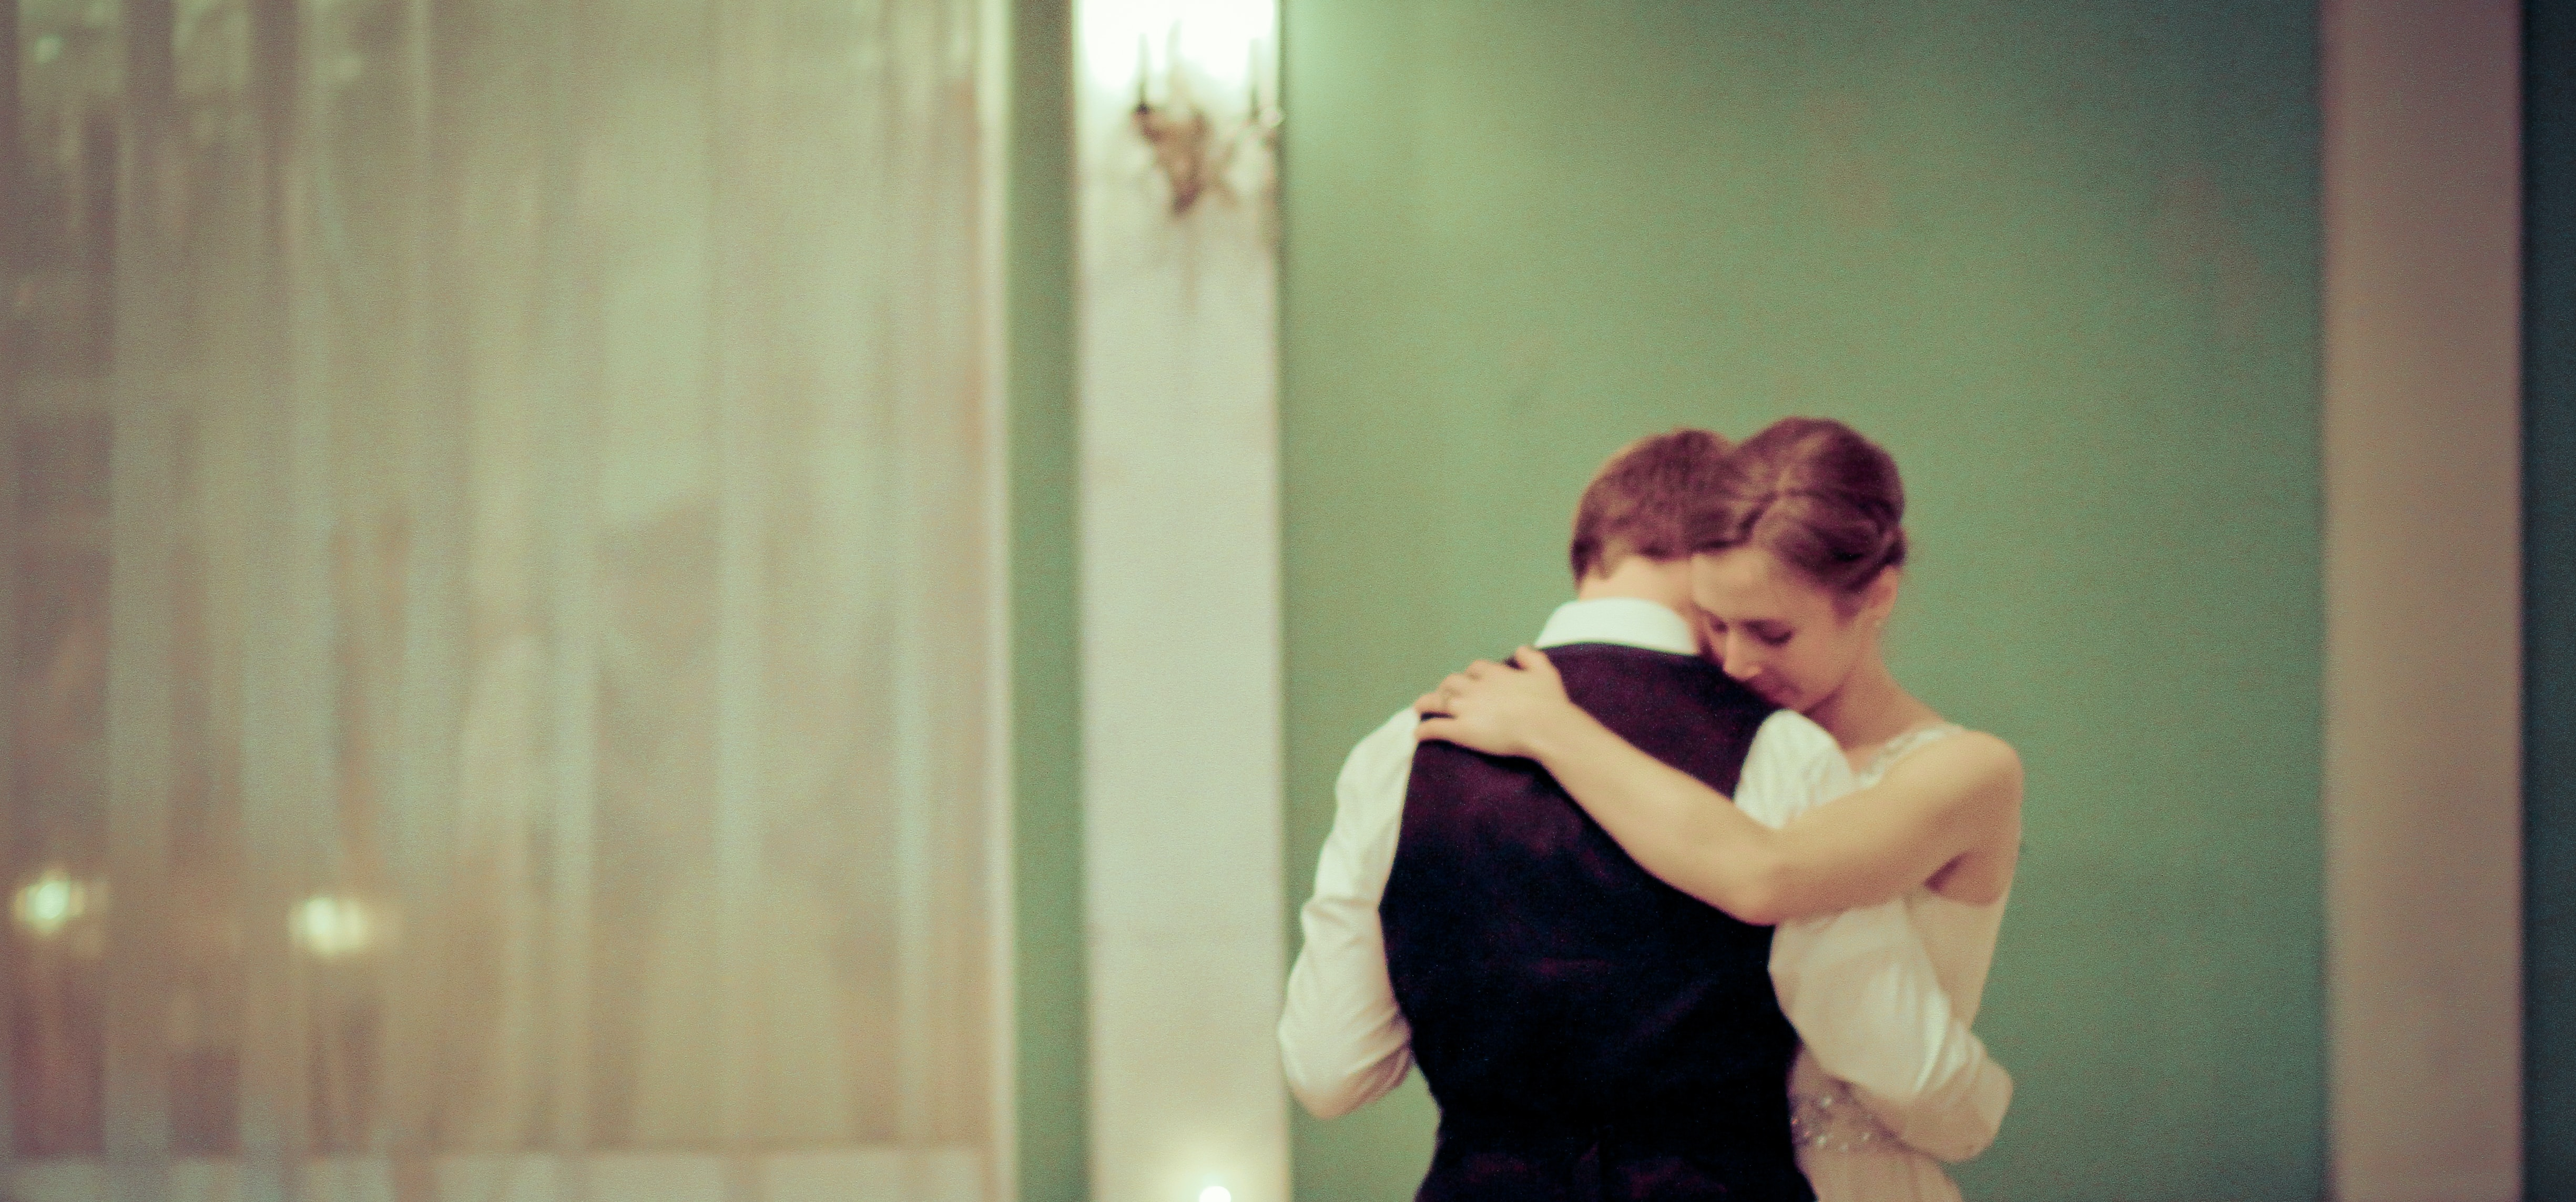 Bride and groom dance quietly together in a green-painted room